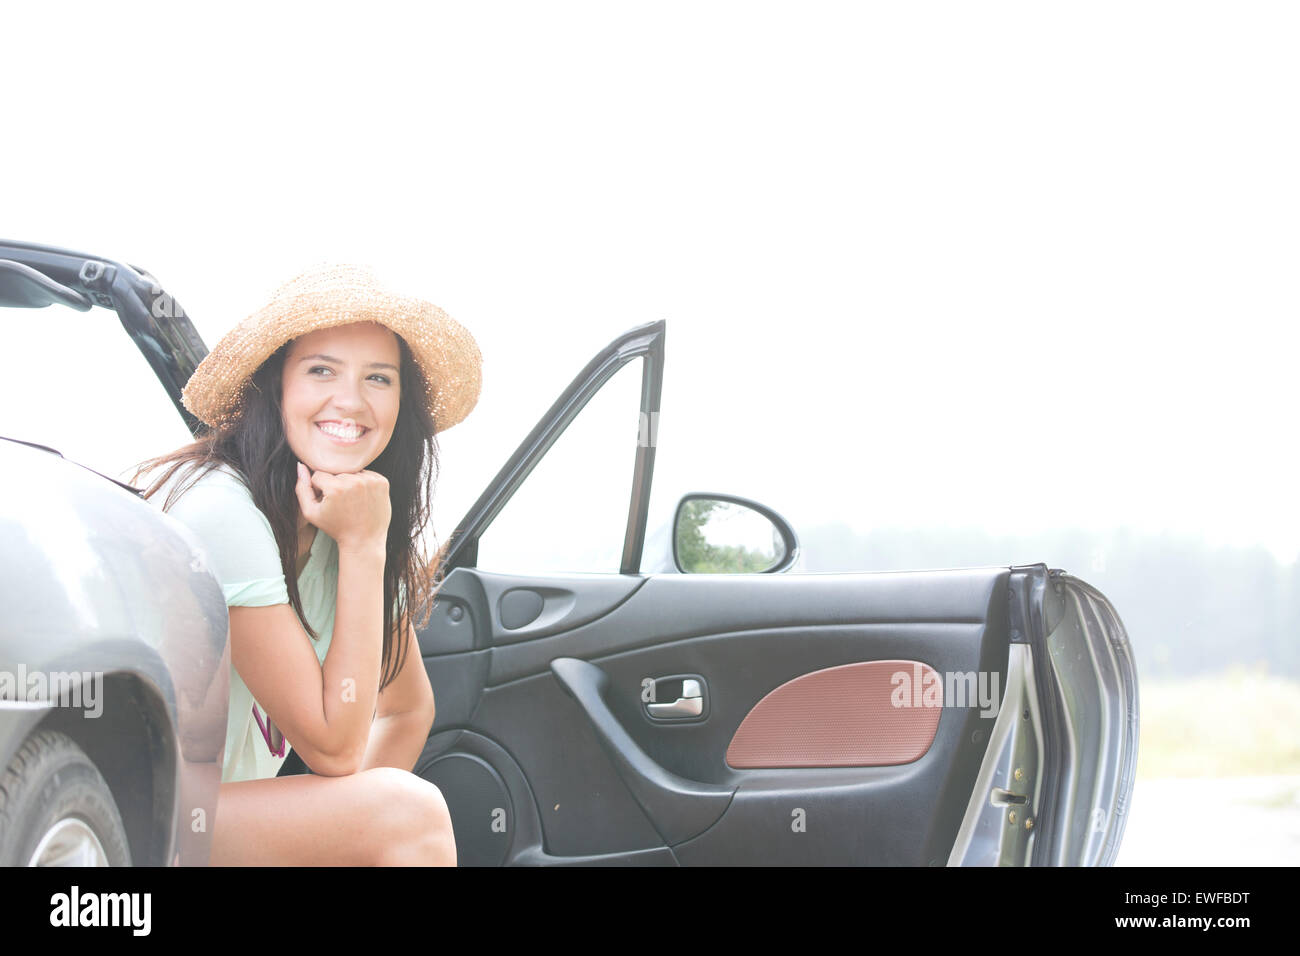 Happy woman sitting in convertible against clear sky - Stock Image